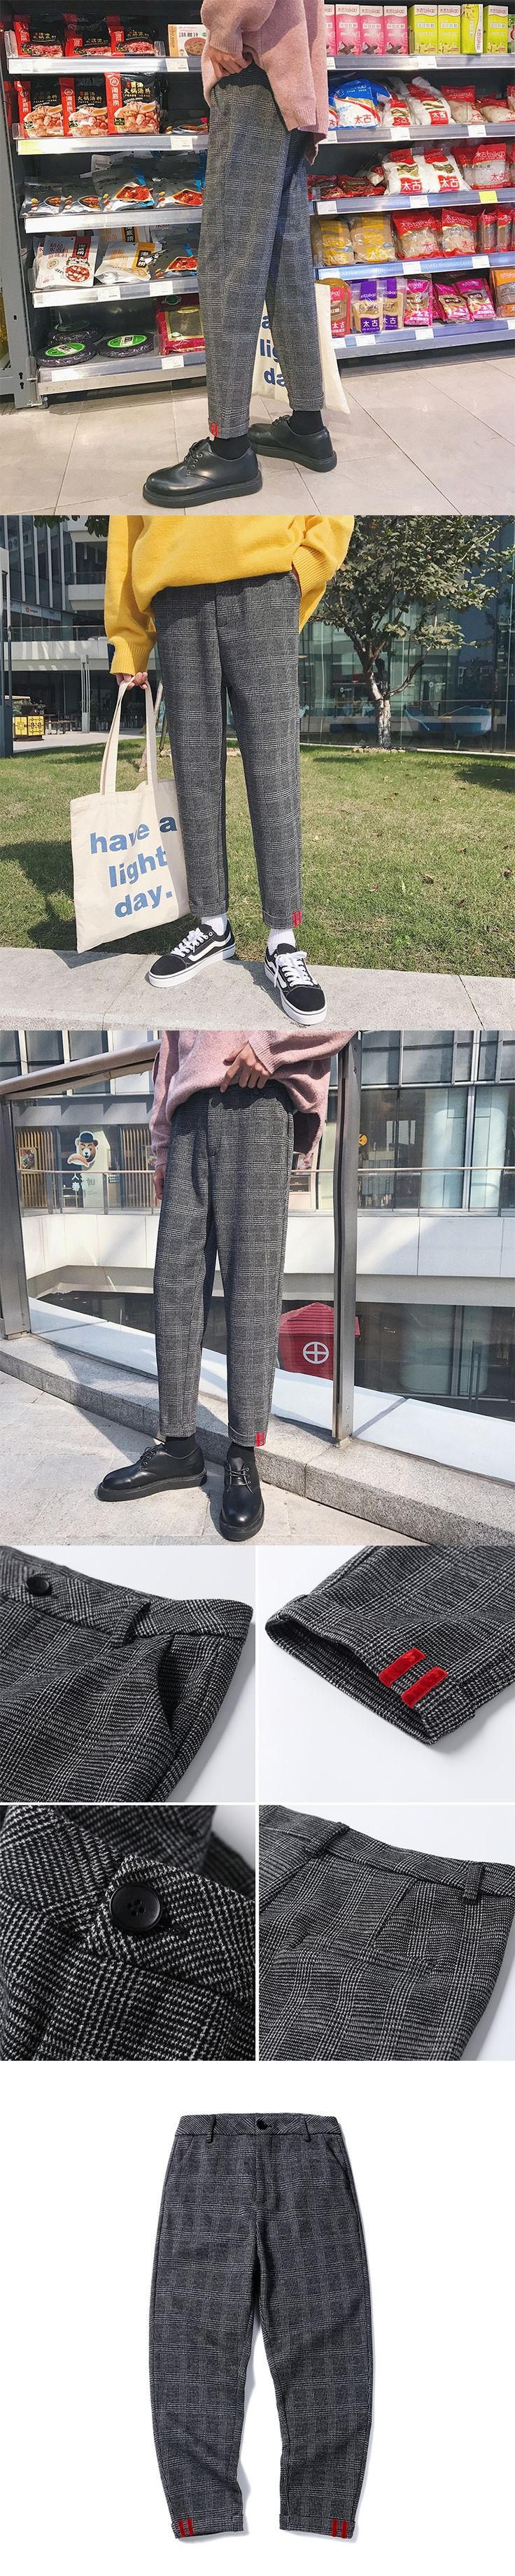 New 2017 Korean Autumn Winter Lattice Leisure Trousers Teenagers Directly Haren Suit Men Pants Loose Fit Casual Pantalon Hombre